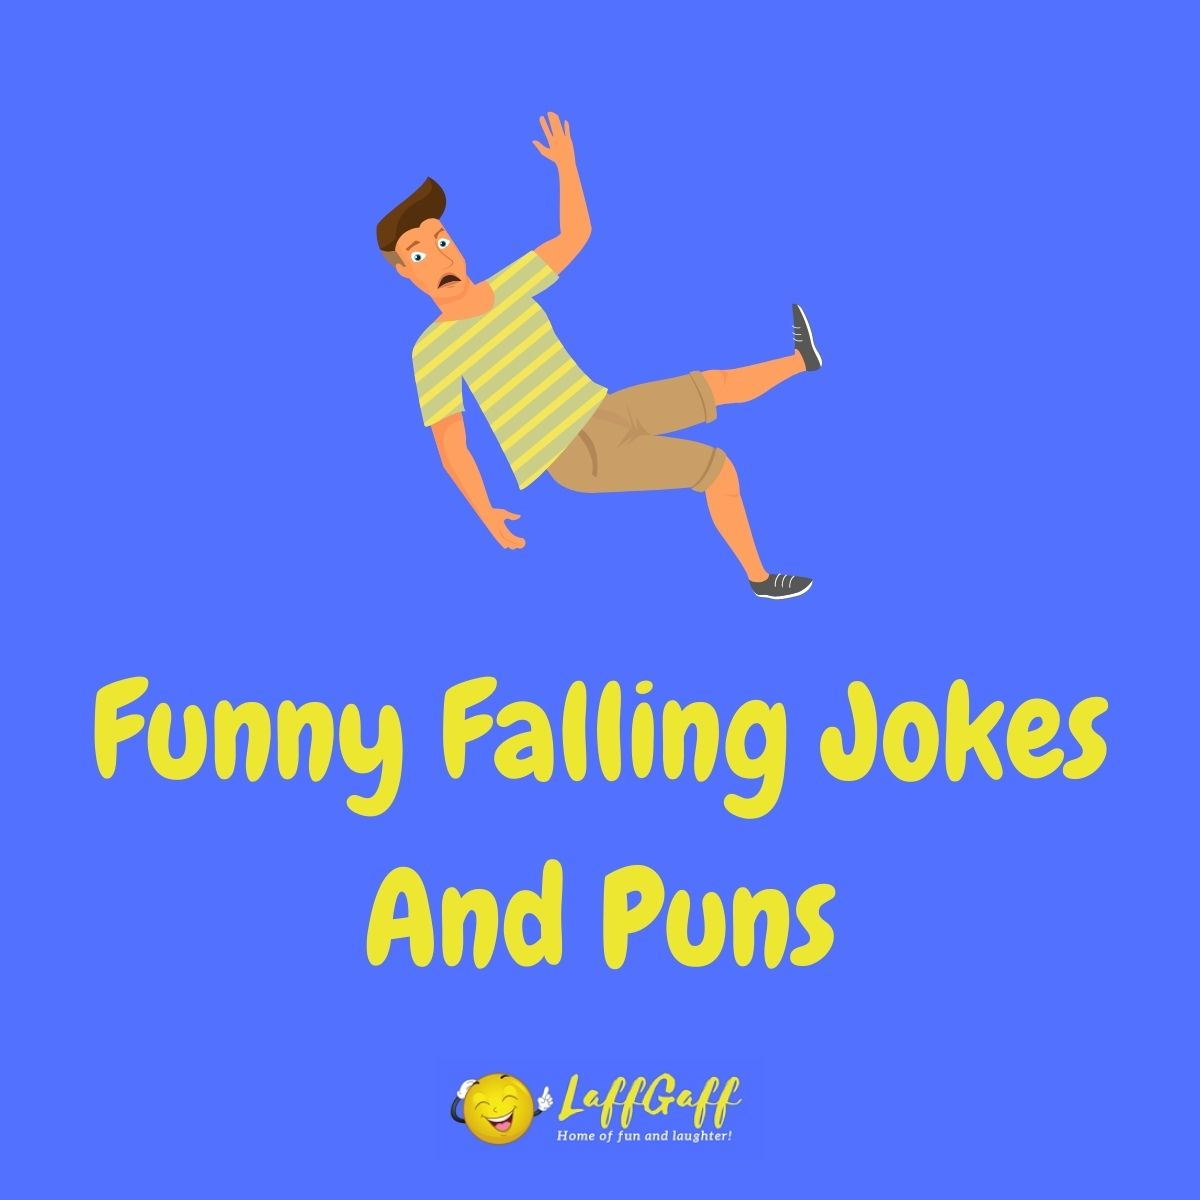 Featured image for a page of funny falling jokes and puns.